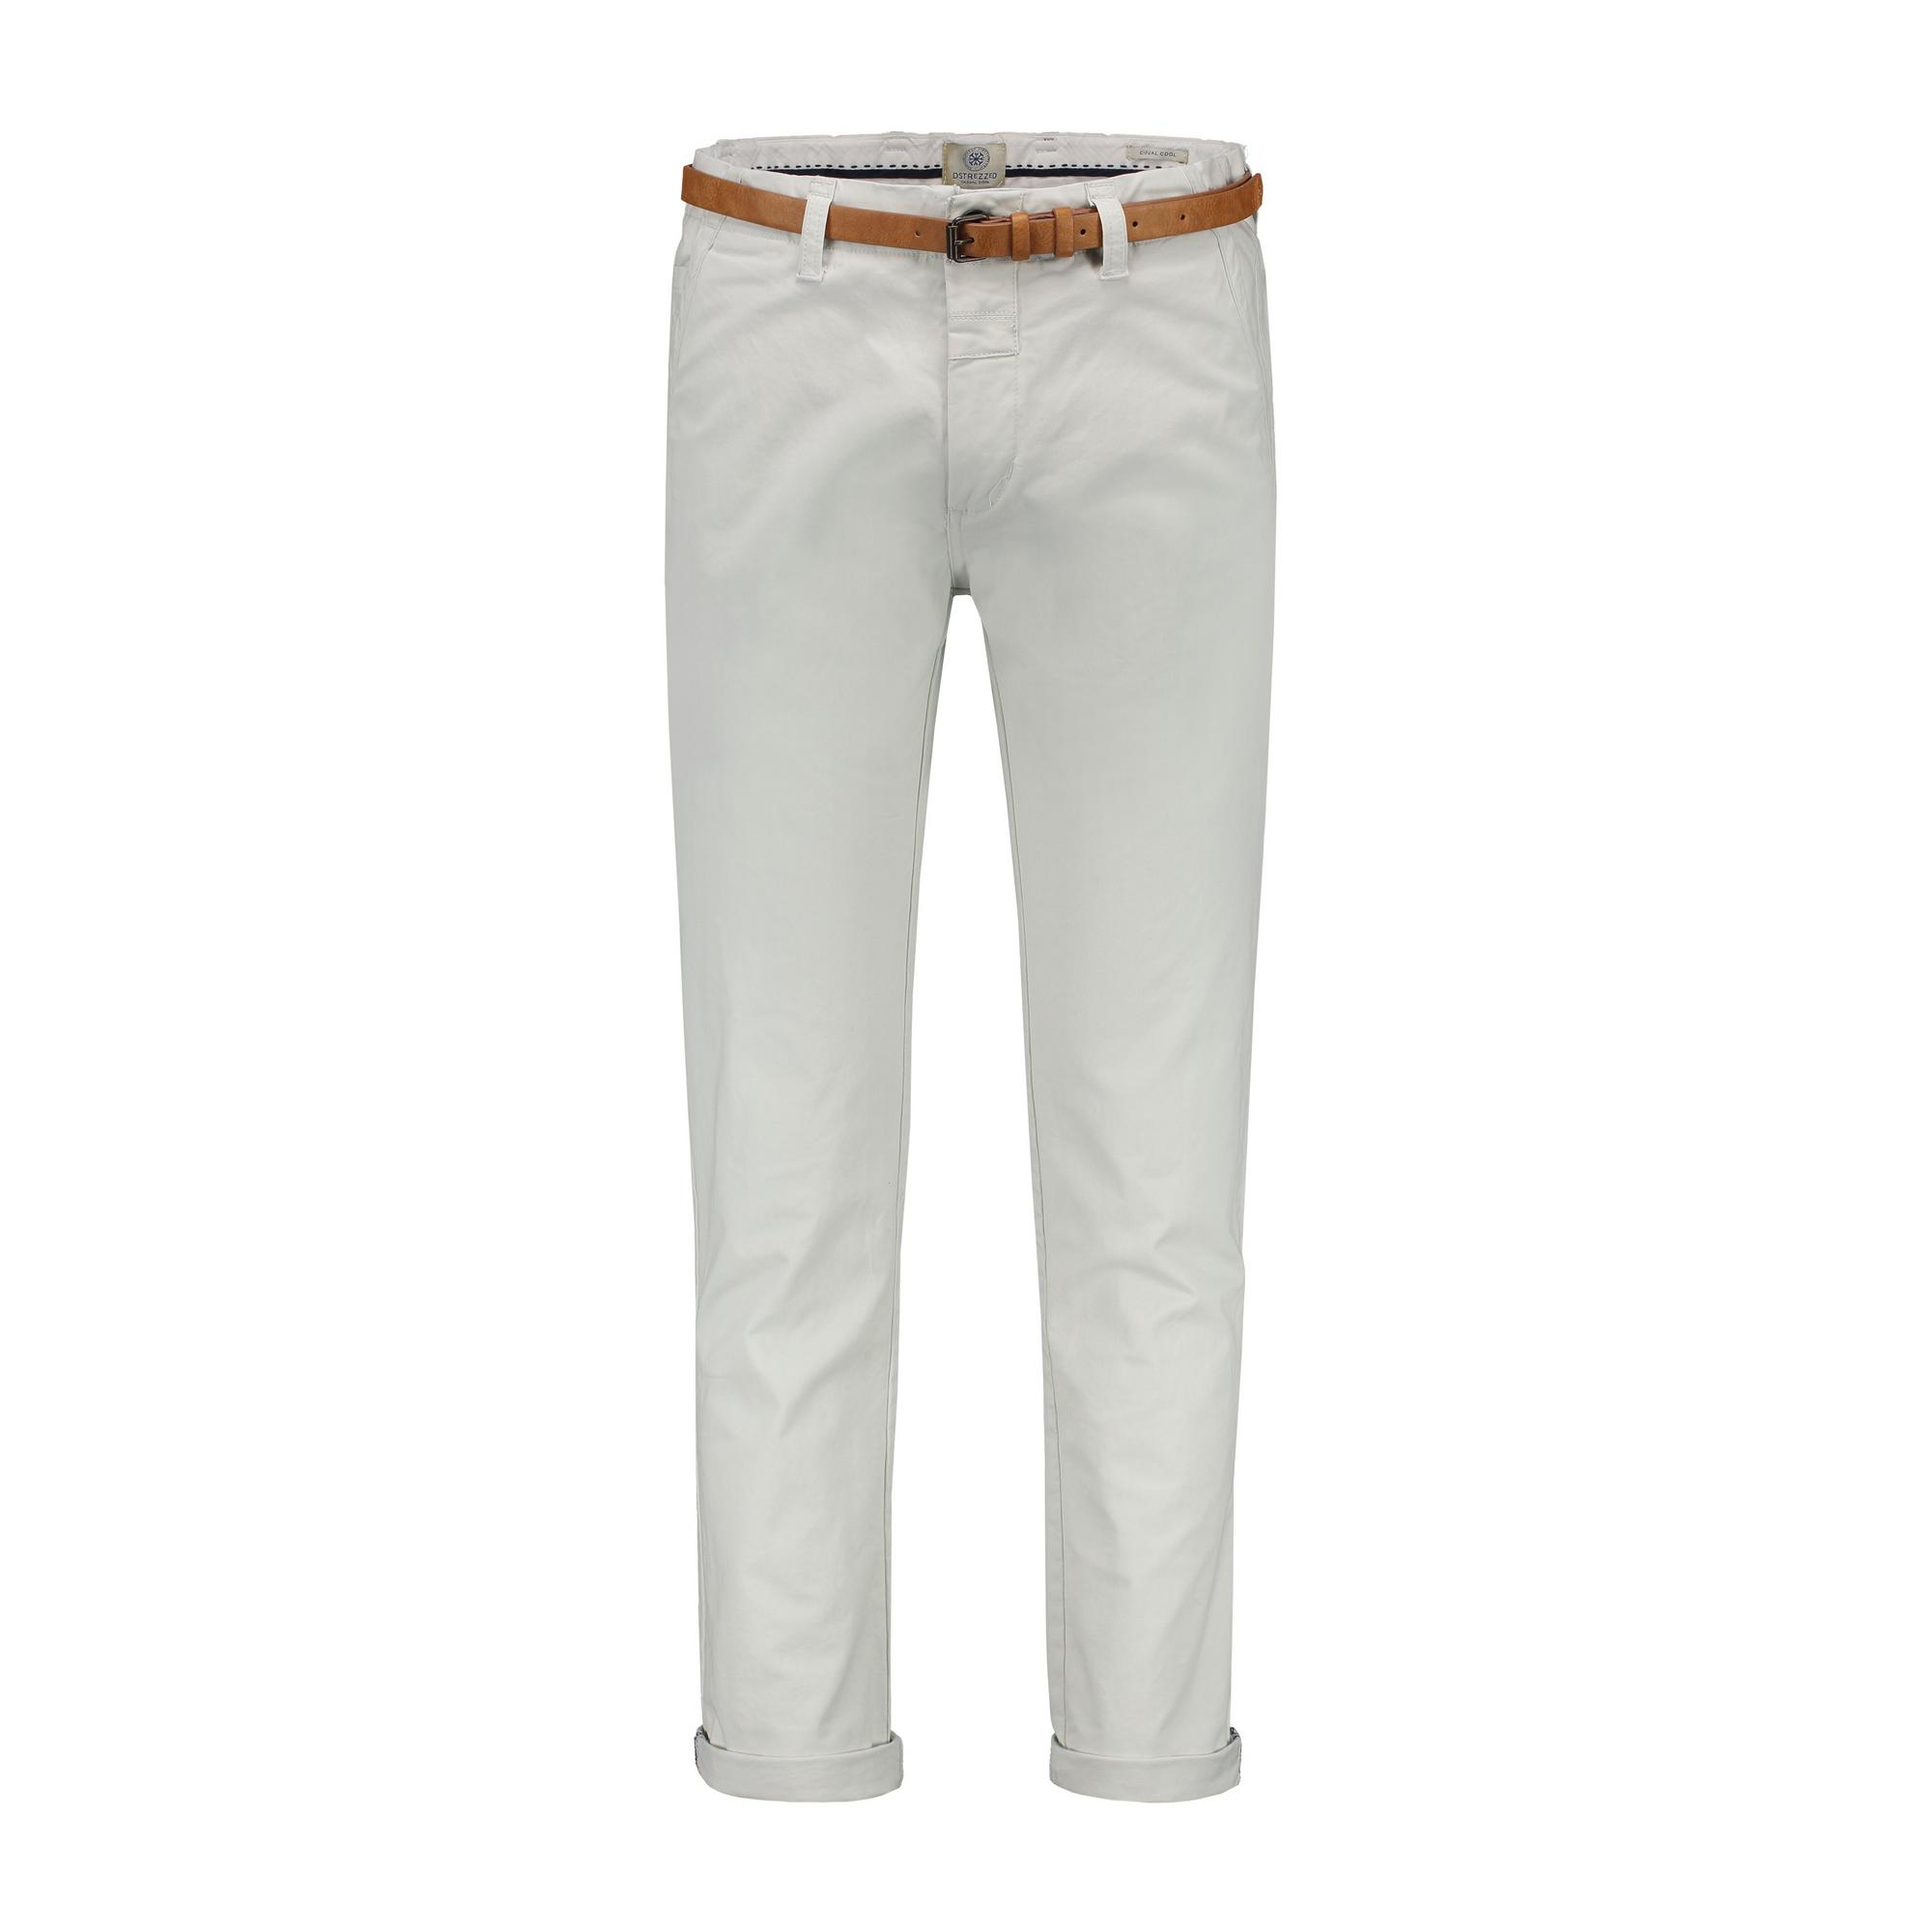 Men's Presley Chino Pants with Belt